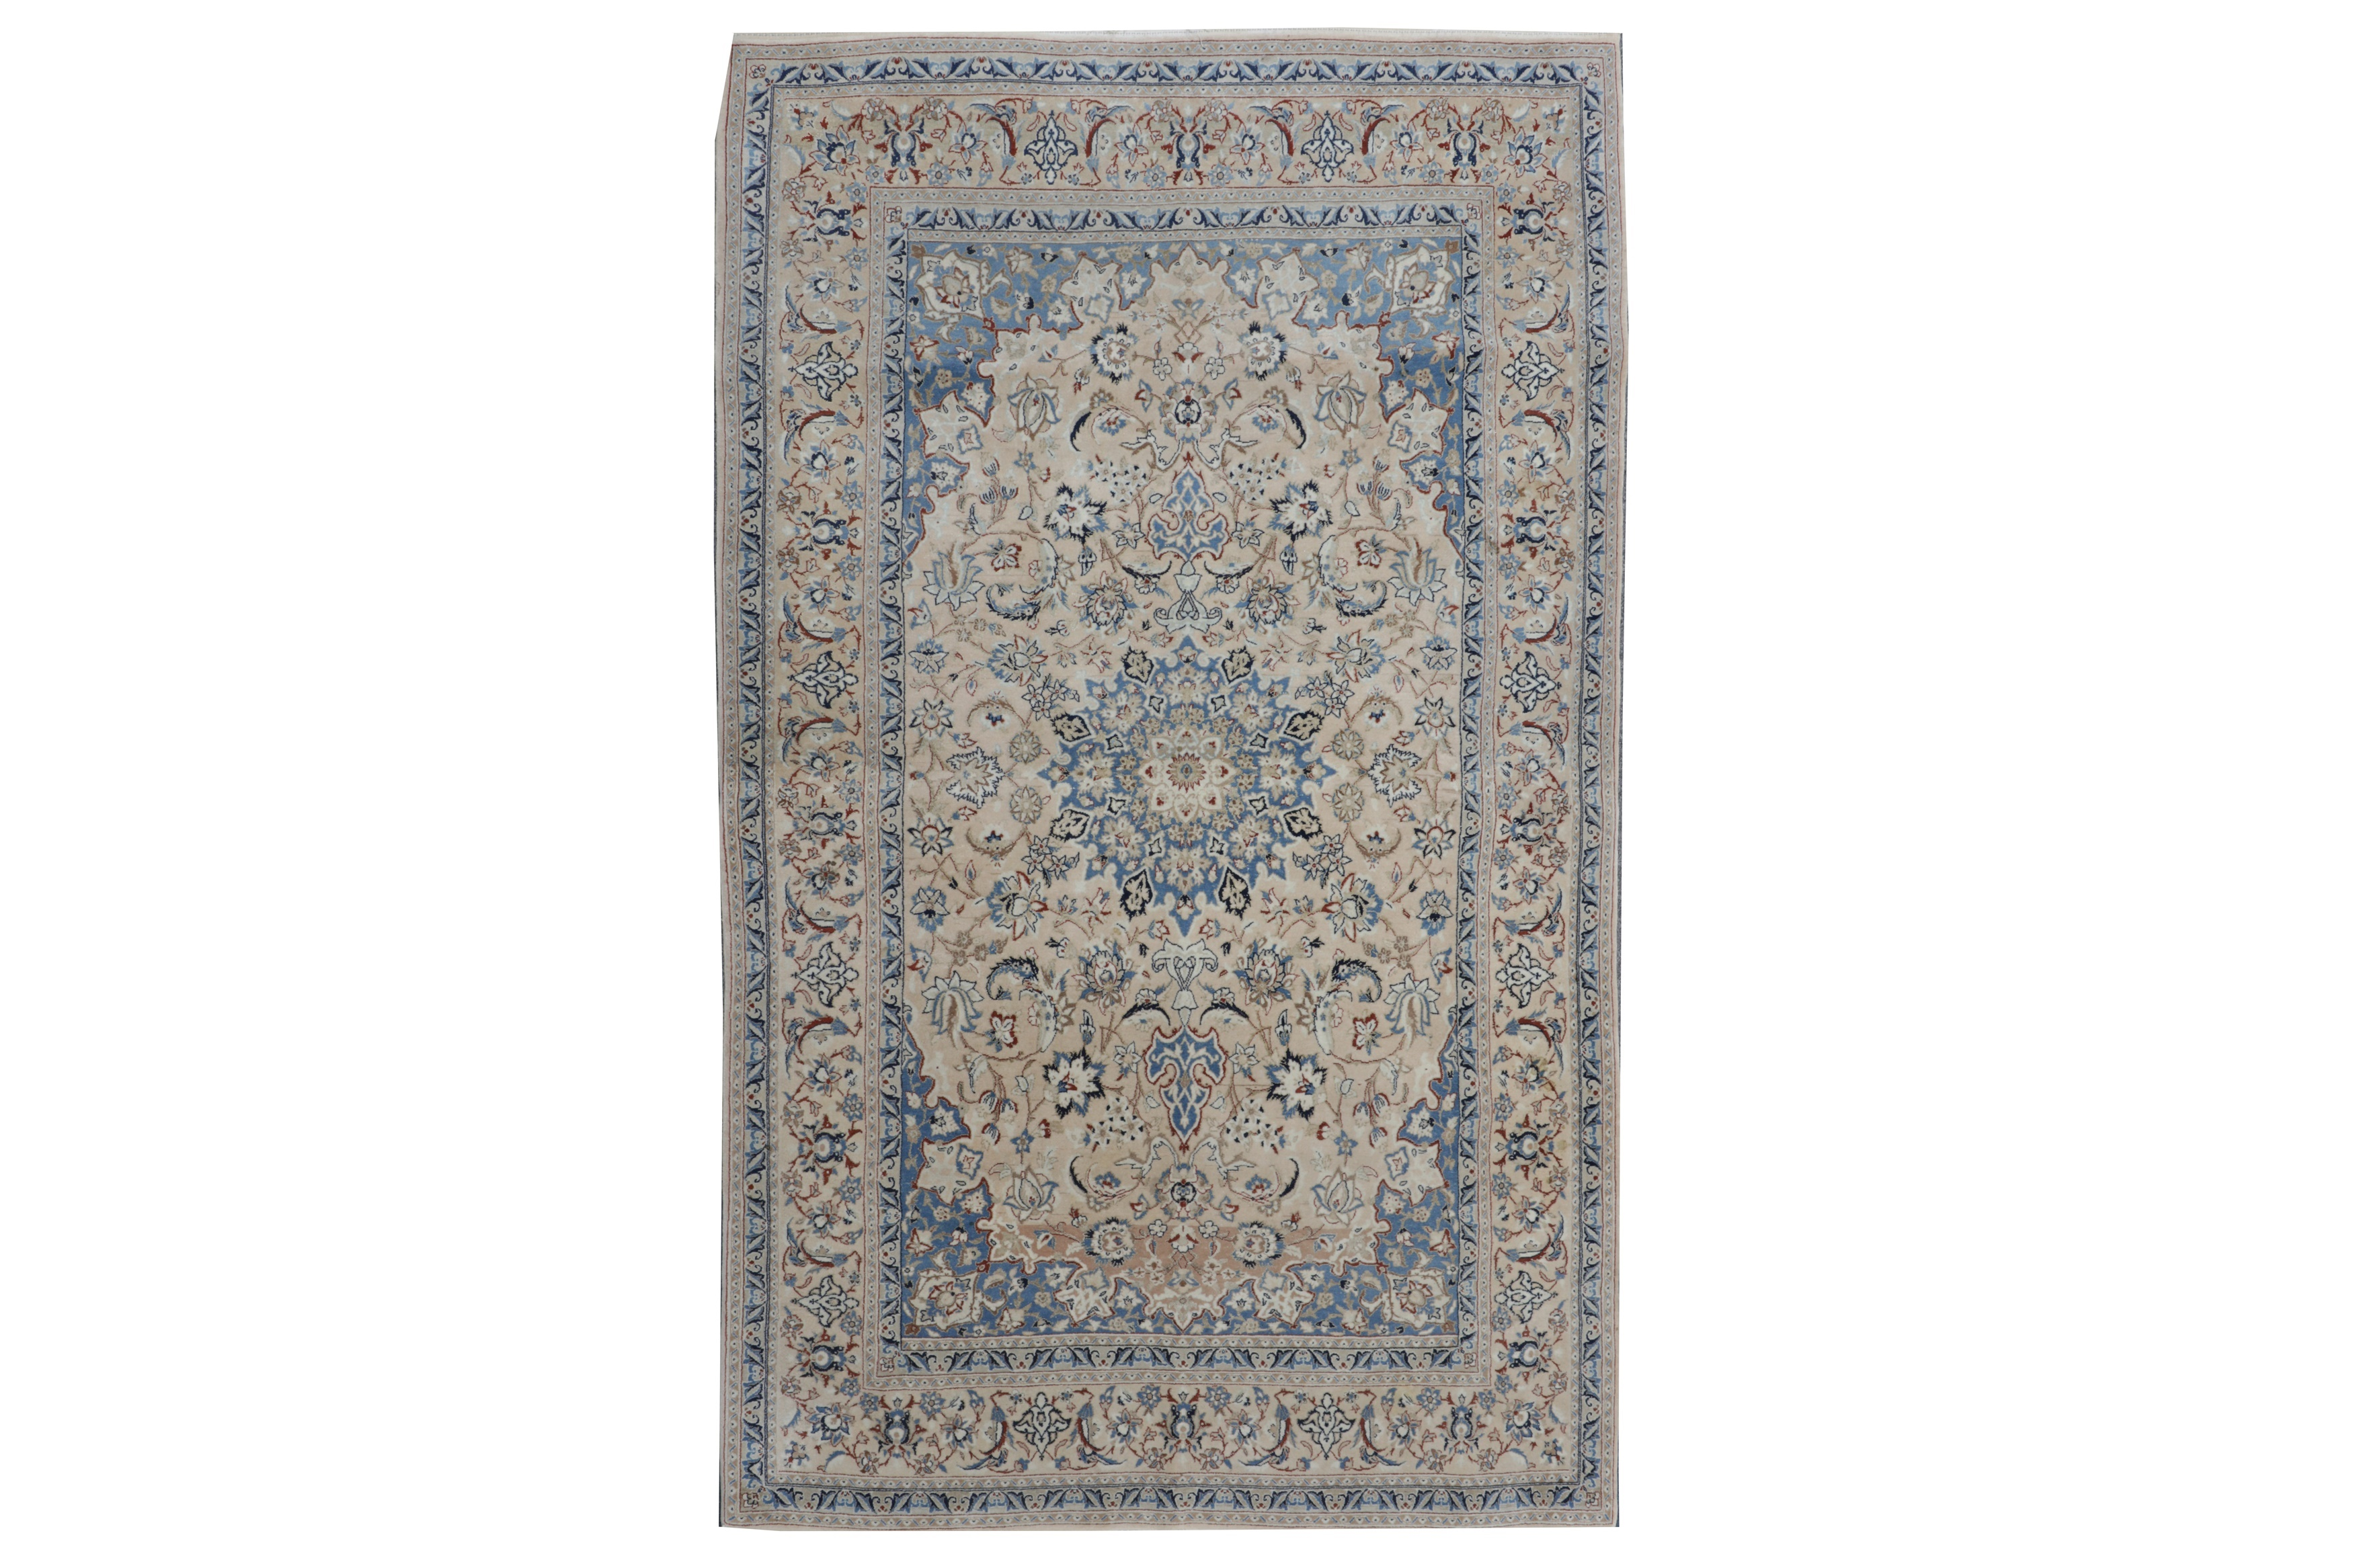 Lot 7. A EXTREMELY FINE PART SILK NAIN RUG, CENTRAL PERSIA